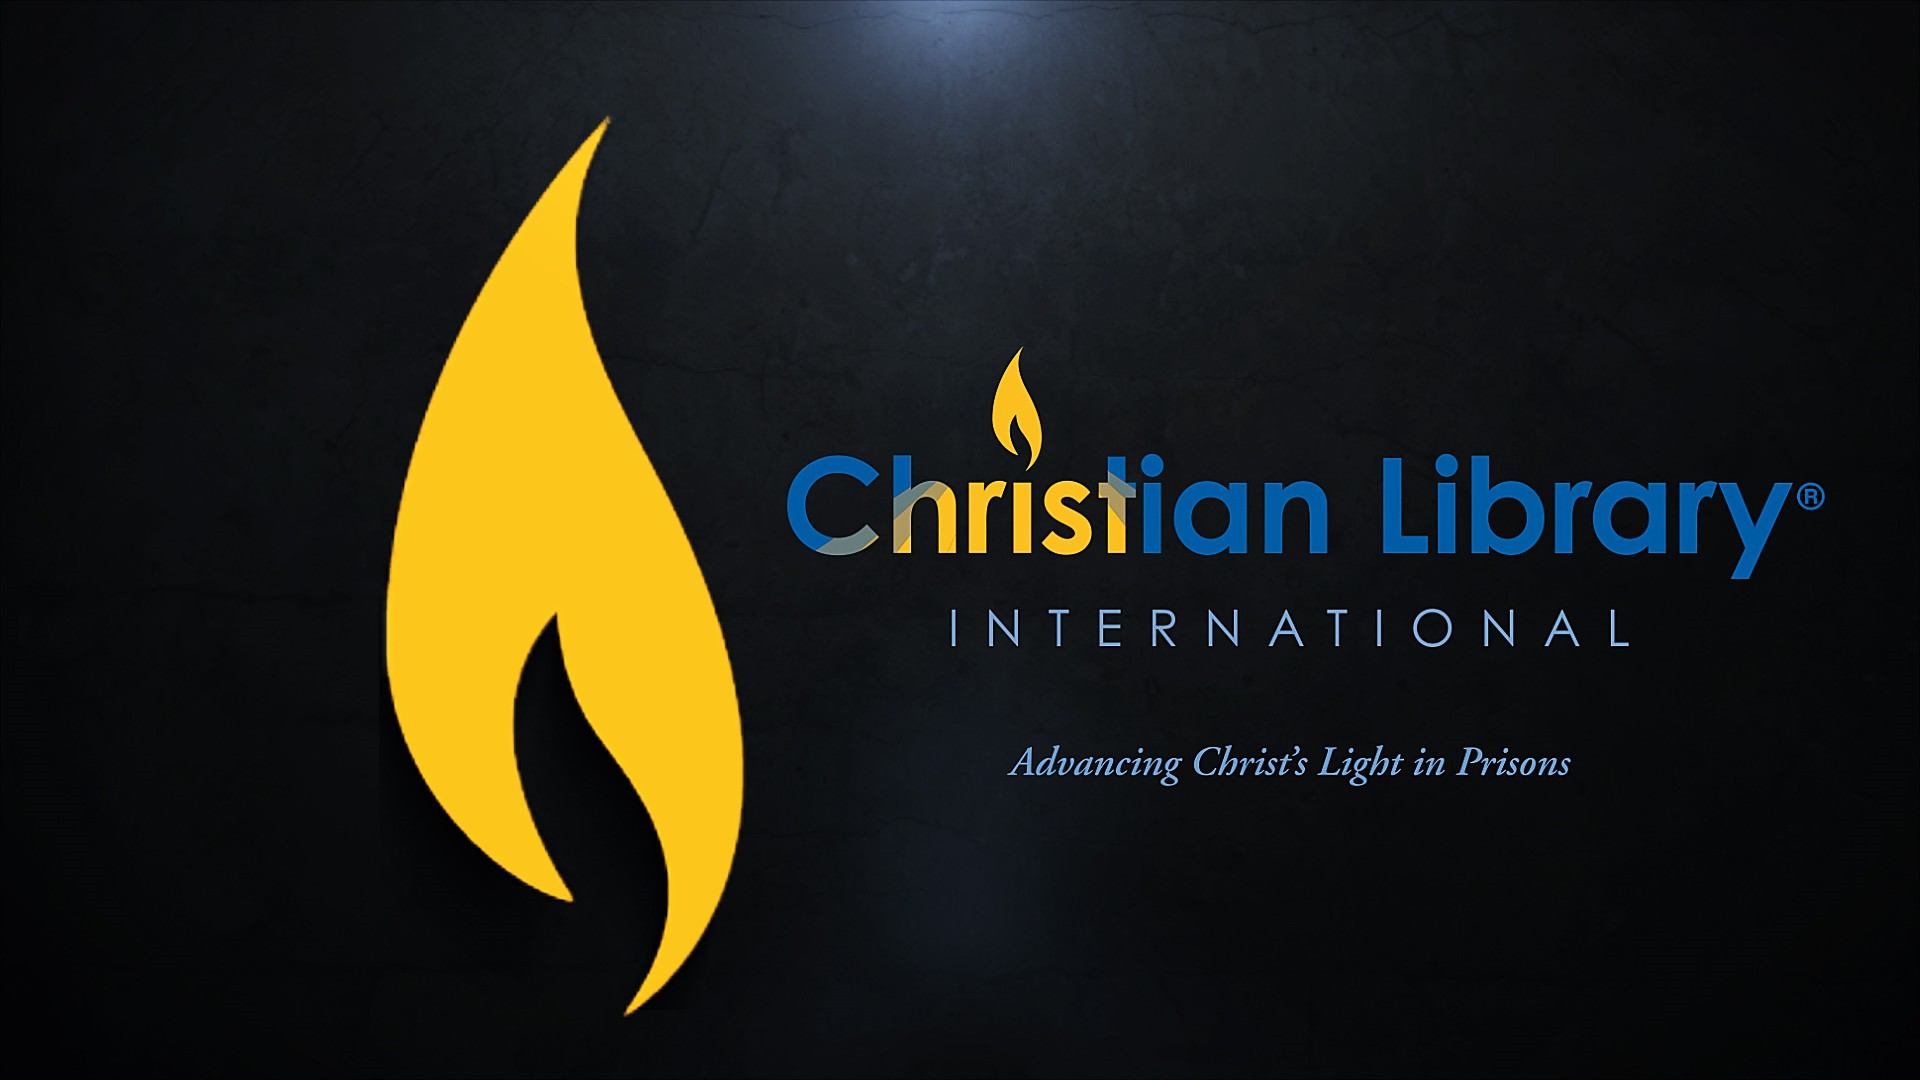 Christian Library International | LinkedIn